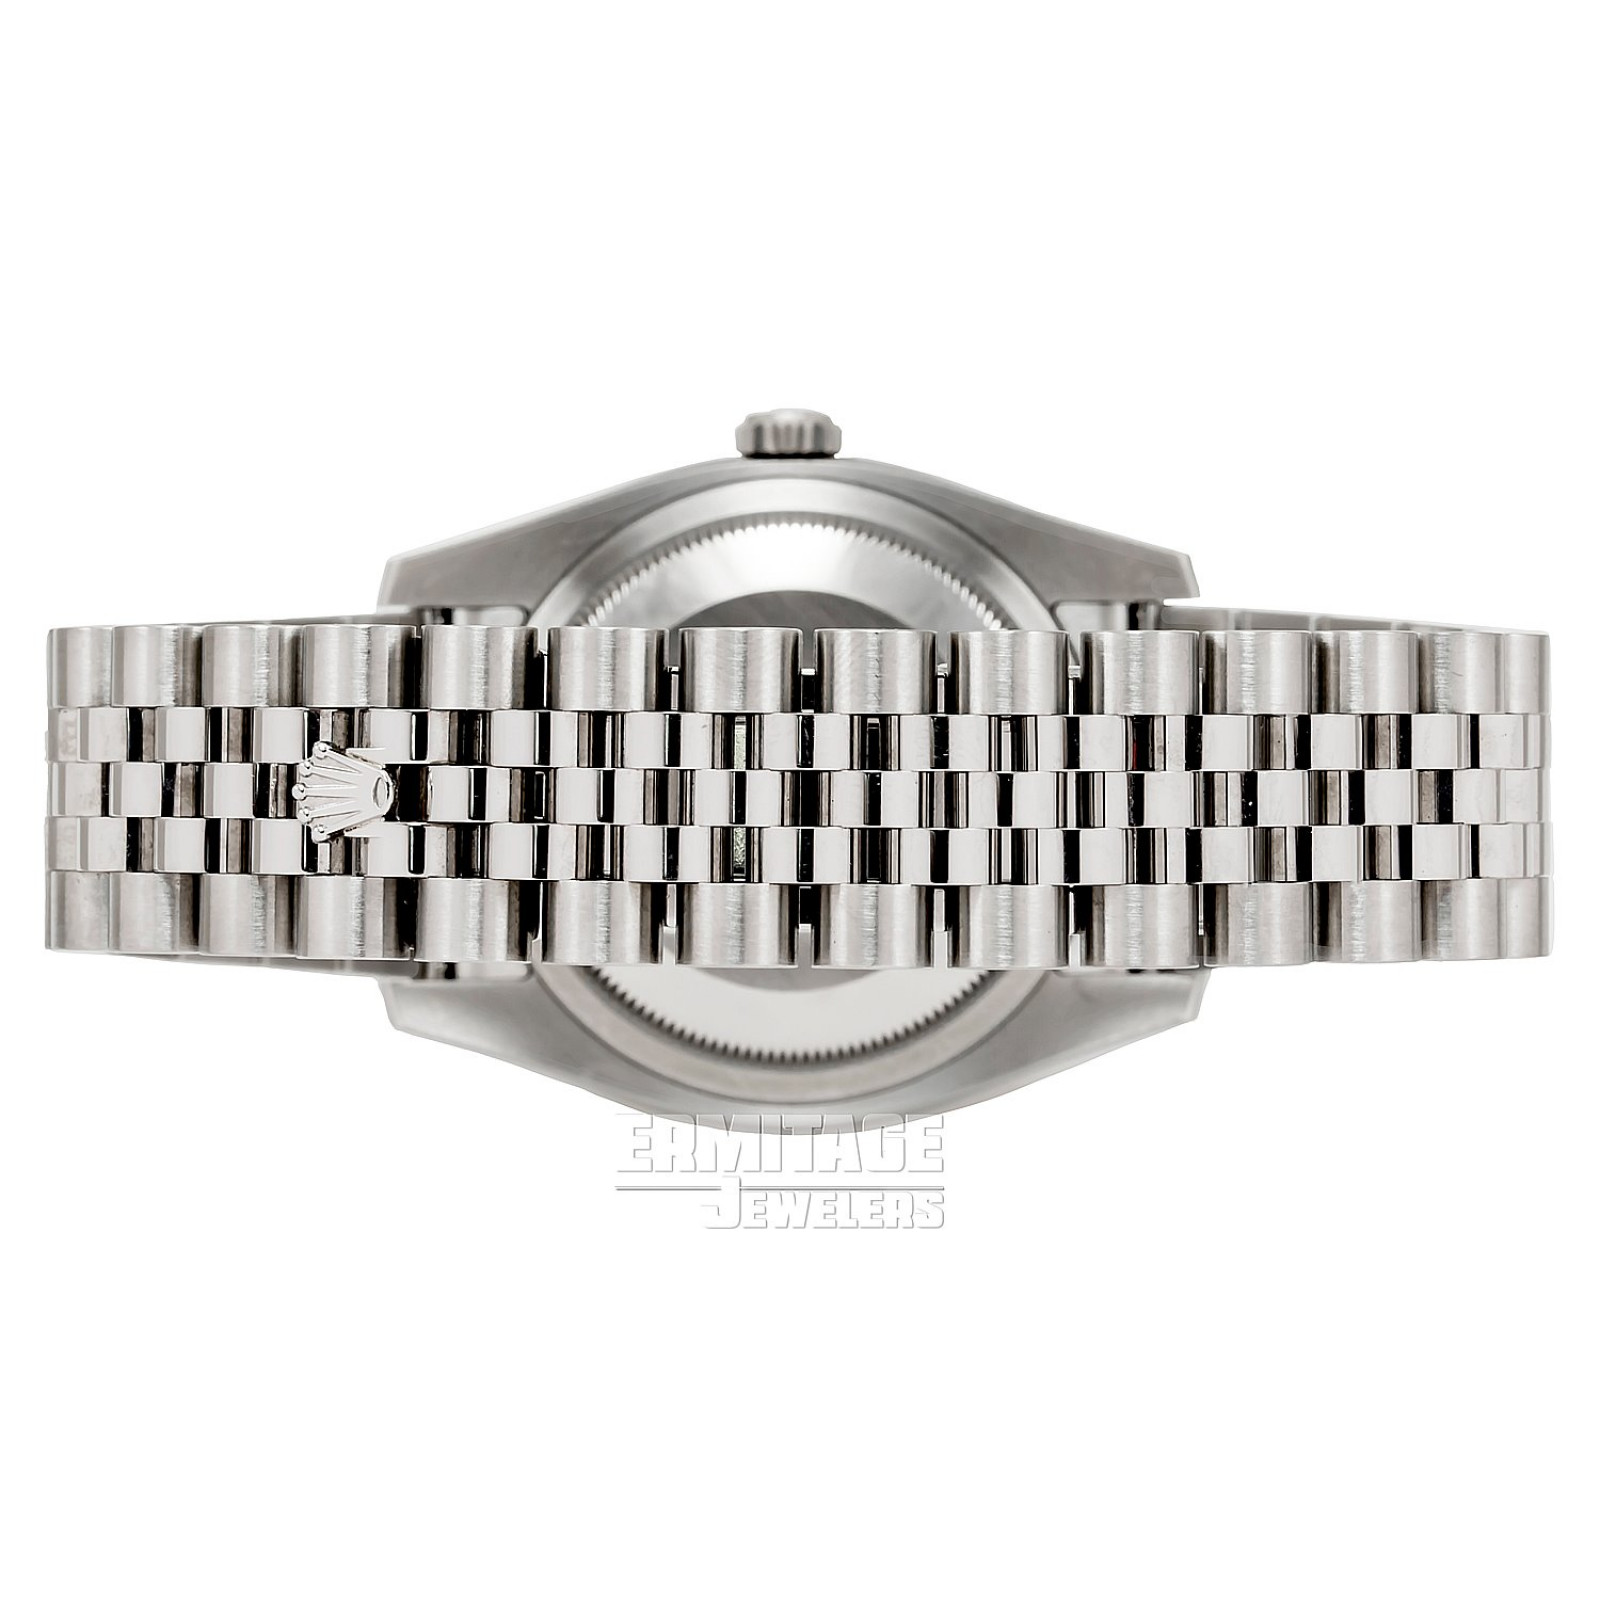 36 mm Rolex Datejust 116234 White Gold & Steel on Jubilee with Black Dial